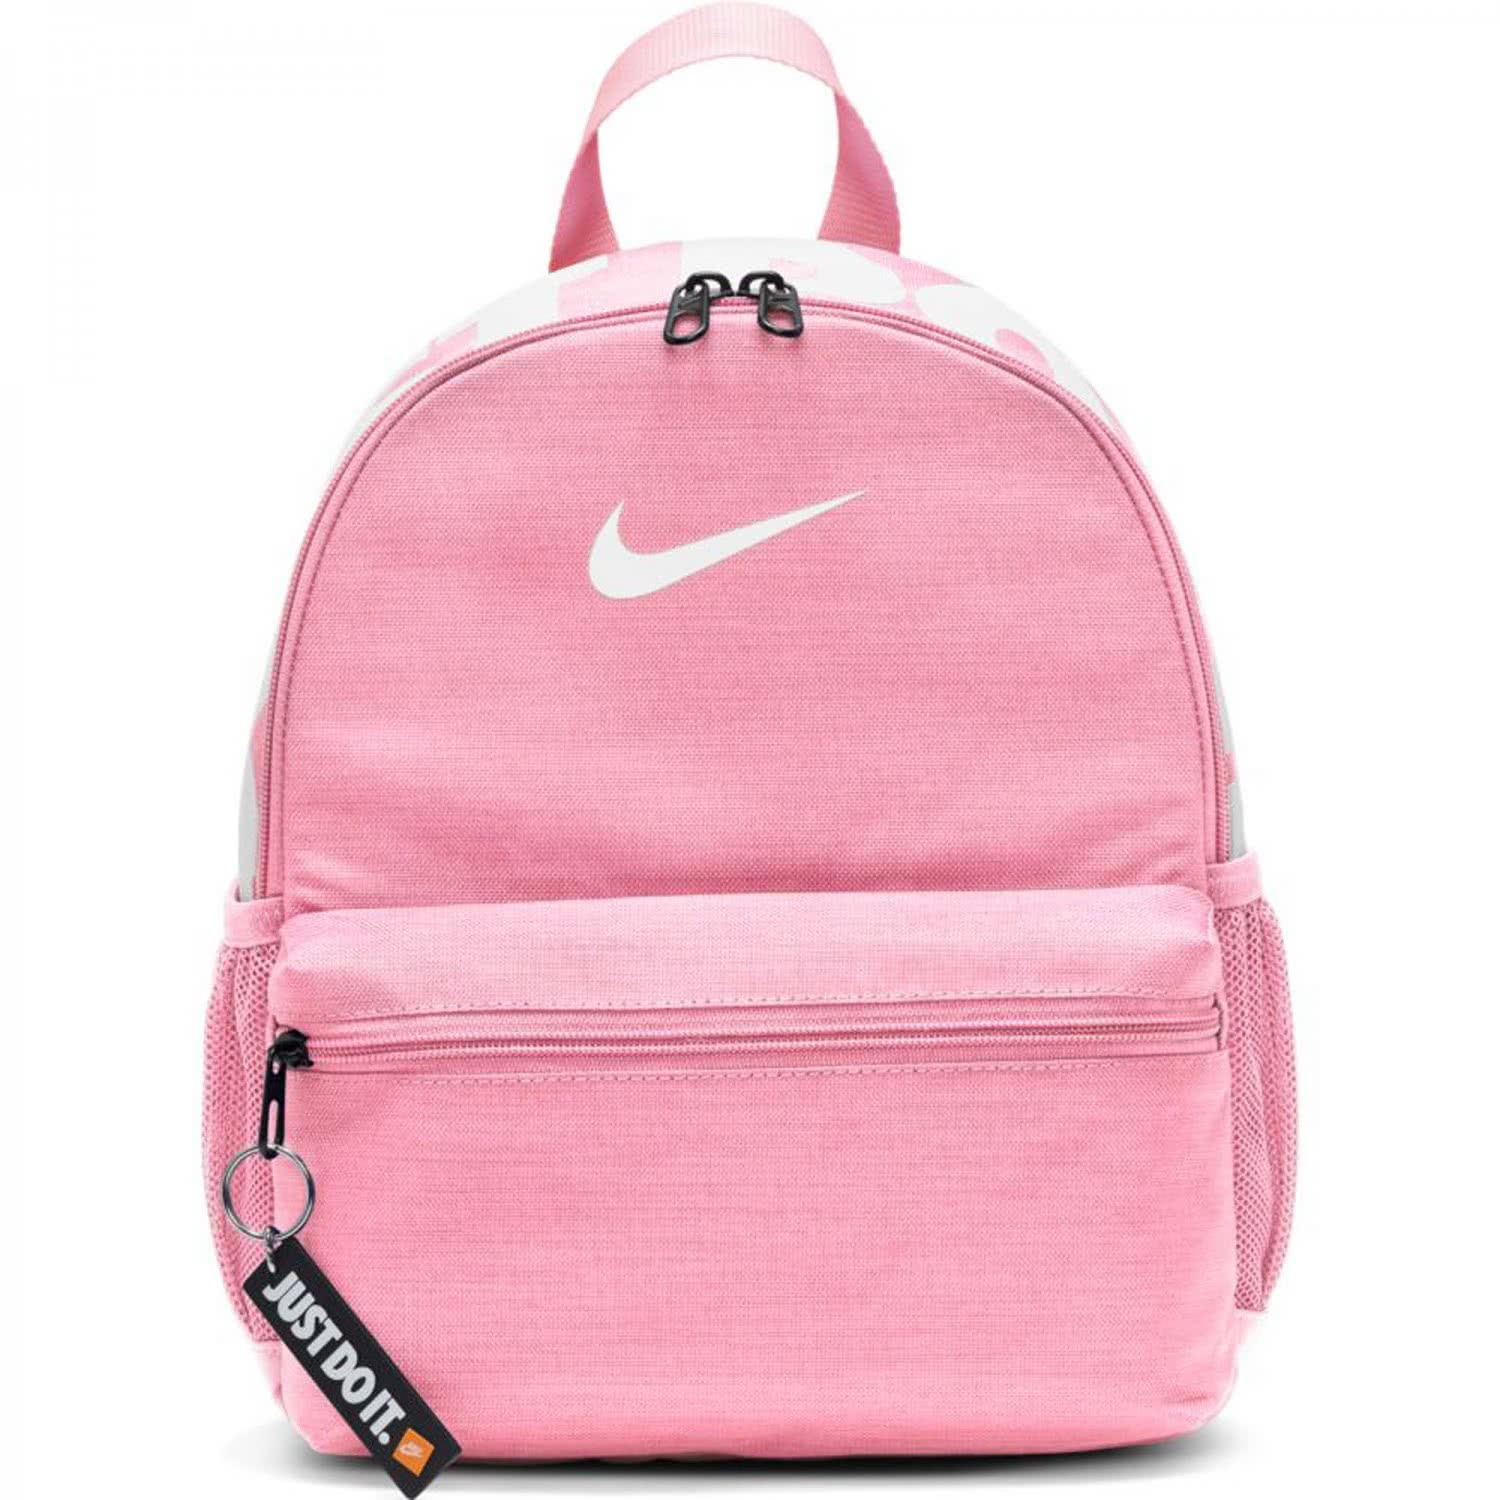 Nike Kinder Rucksack Brasilia JDI Mini Backpack BA5559